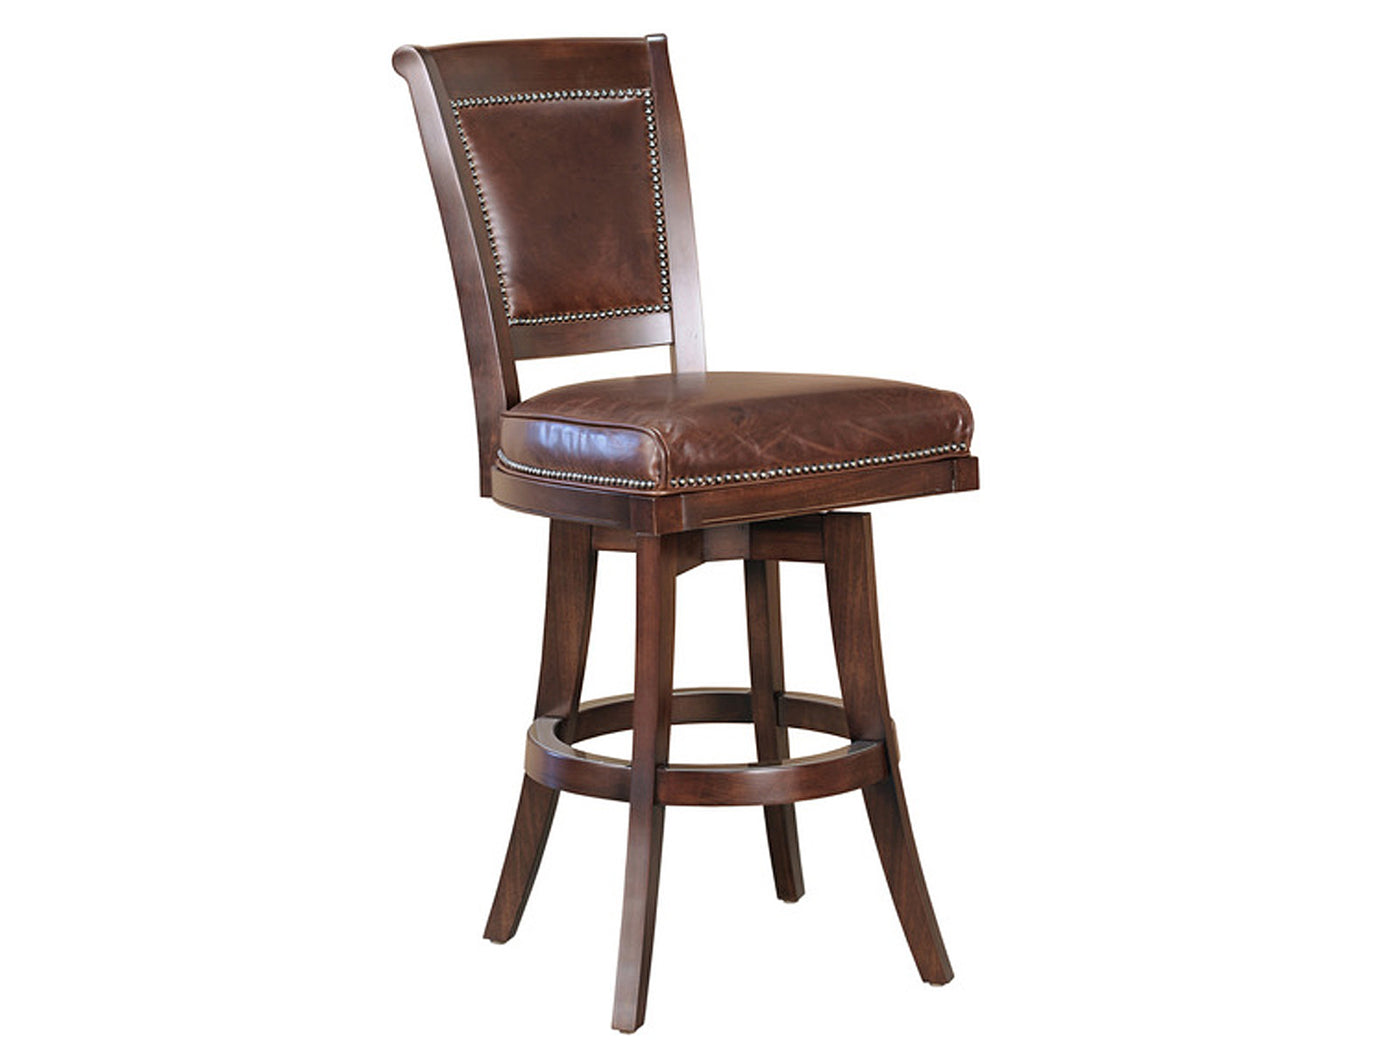 Elegant California House S2920 Bar Stool